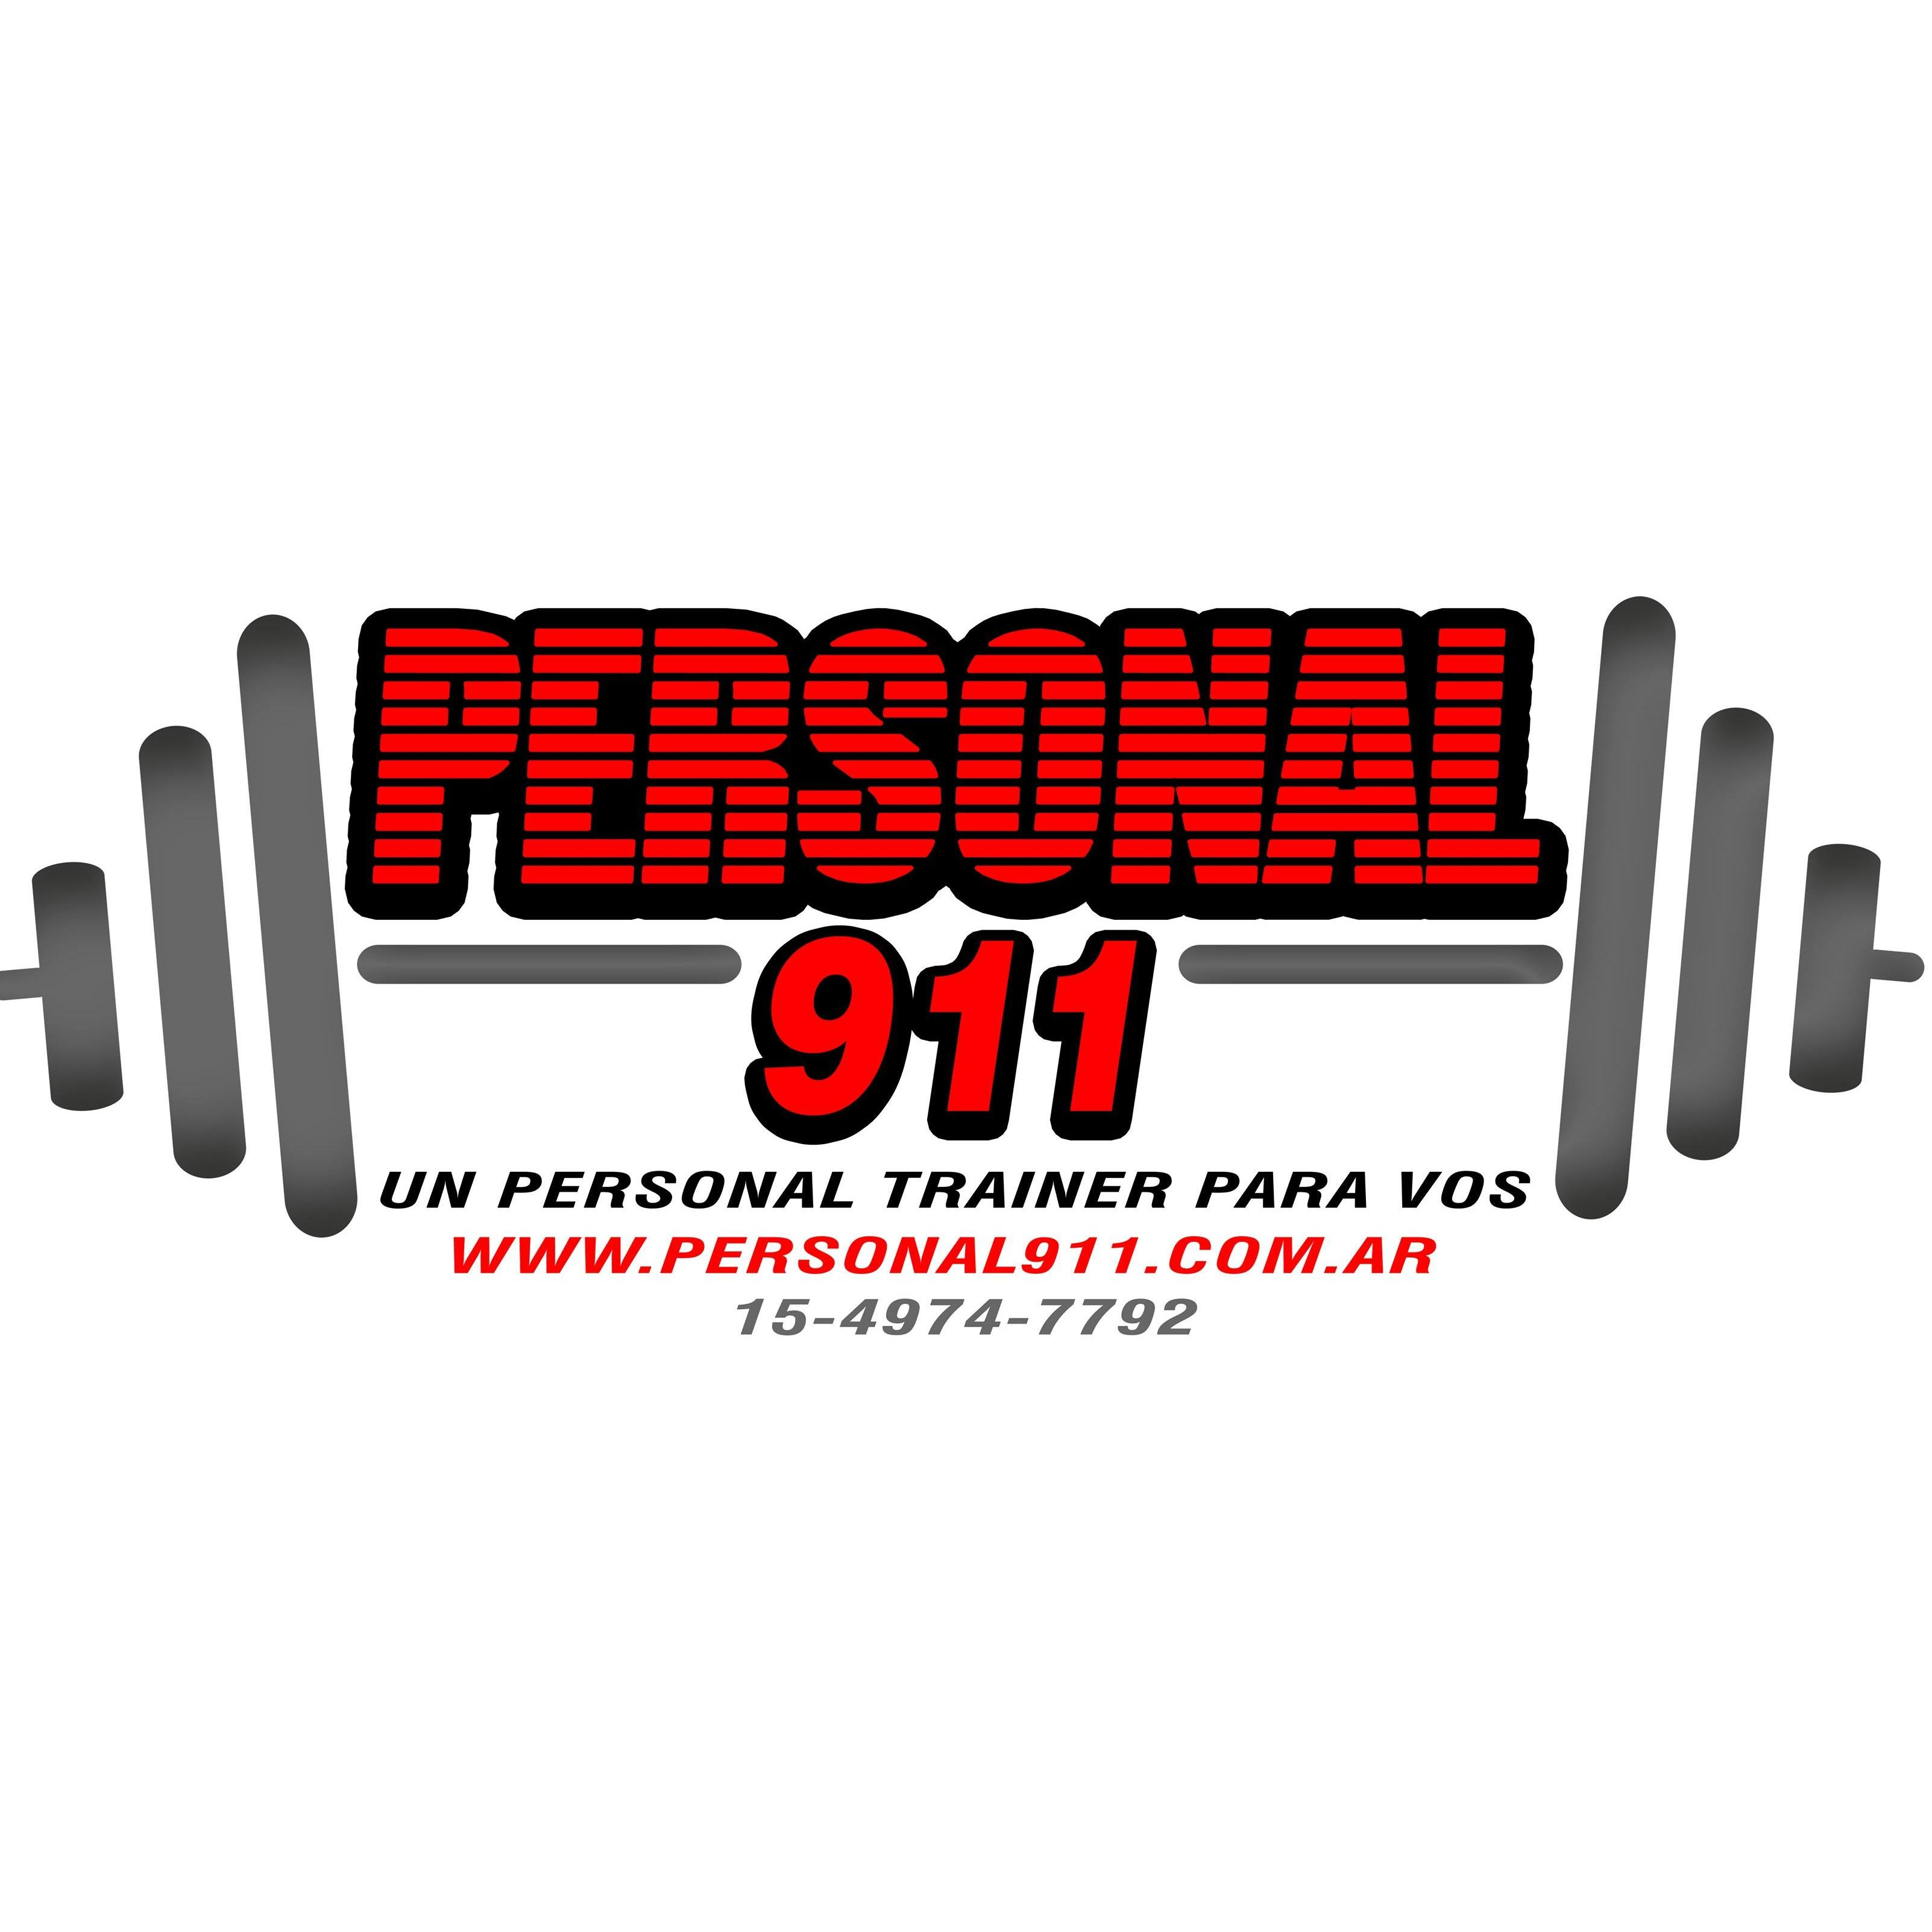 Personal 911